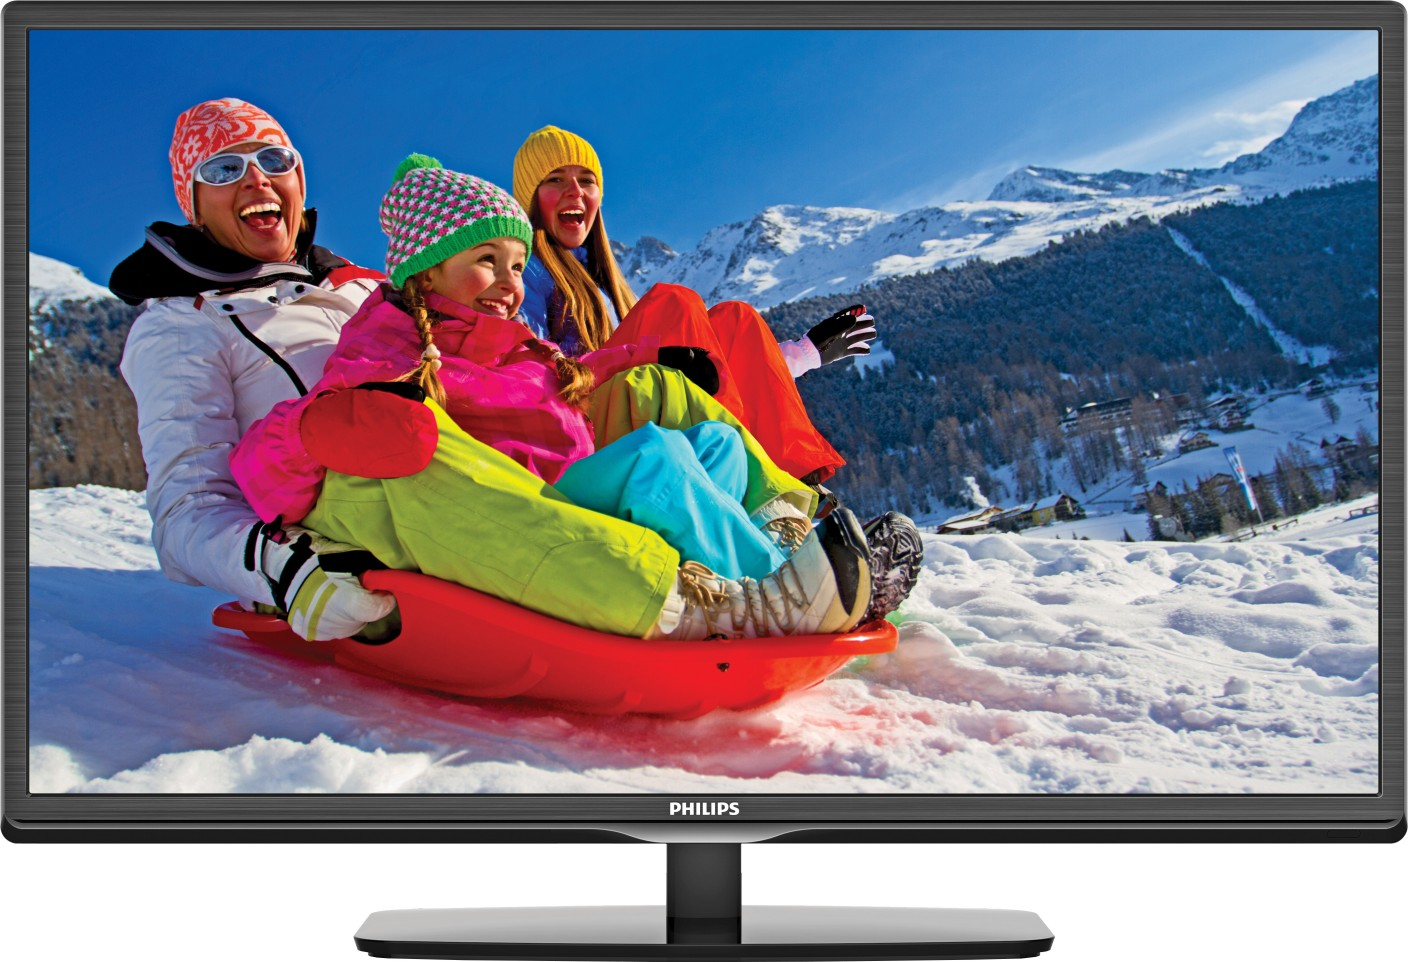 philips 74 cm 28 inch hd ready led tv online at best prices in india. Black Bedroom Furniture Sets. Home Design Ideas